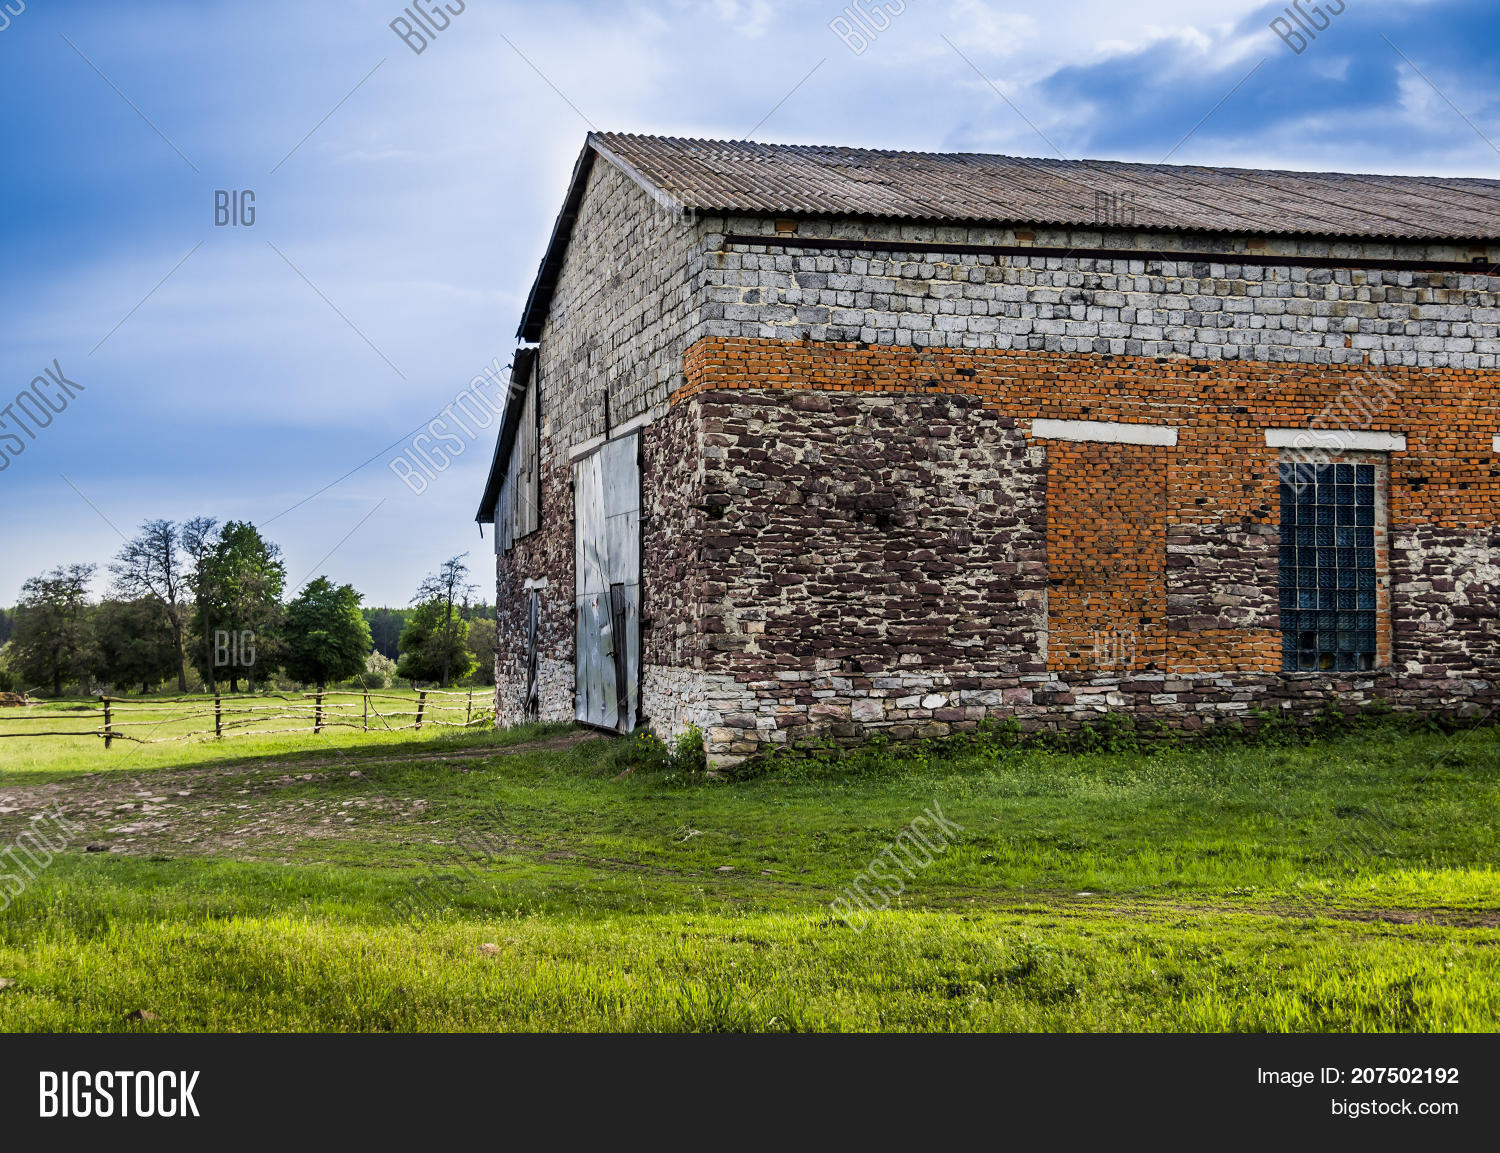 agriculture,architecture,barn,big,brick,building,construction,country,countryside,door,exterior,facade,farm,garage,green,house,large,nature,old,outdoor,red,roof,rural,shed,stone,vintage,wall,warehouse,wooden